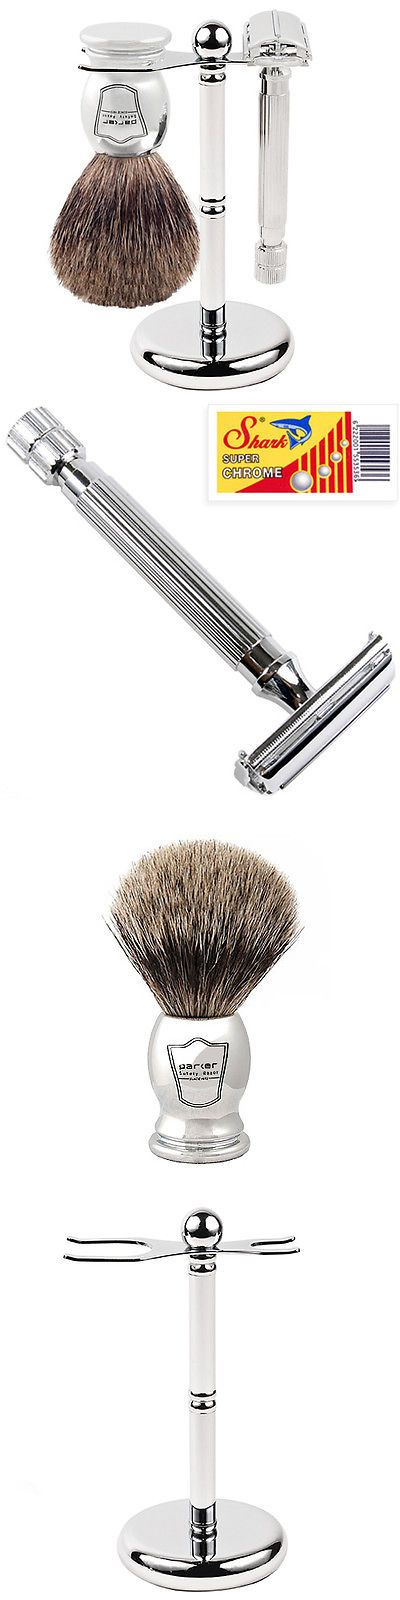 Shaving and Grooming Kits and Sets: Parker 82R Shave Set - Safety Razor, Stand And 100% Pure Badger Brush Included -> BUY IT NOW ONLY: $79.99 on eBay!